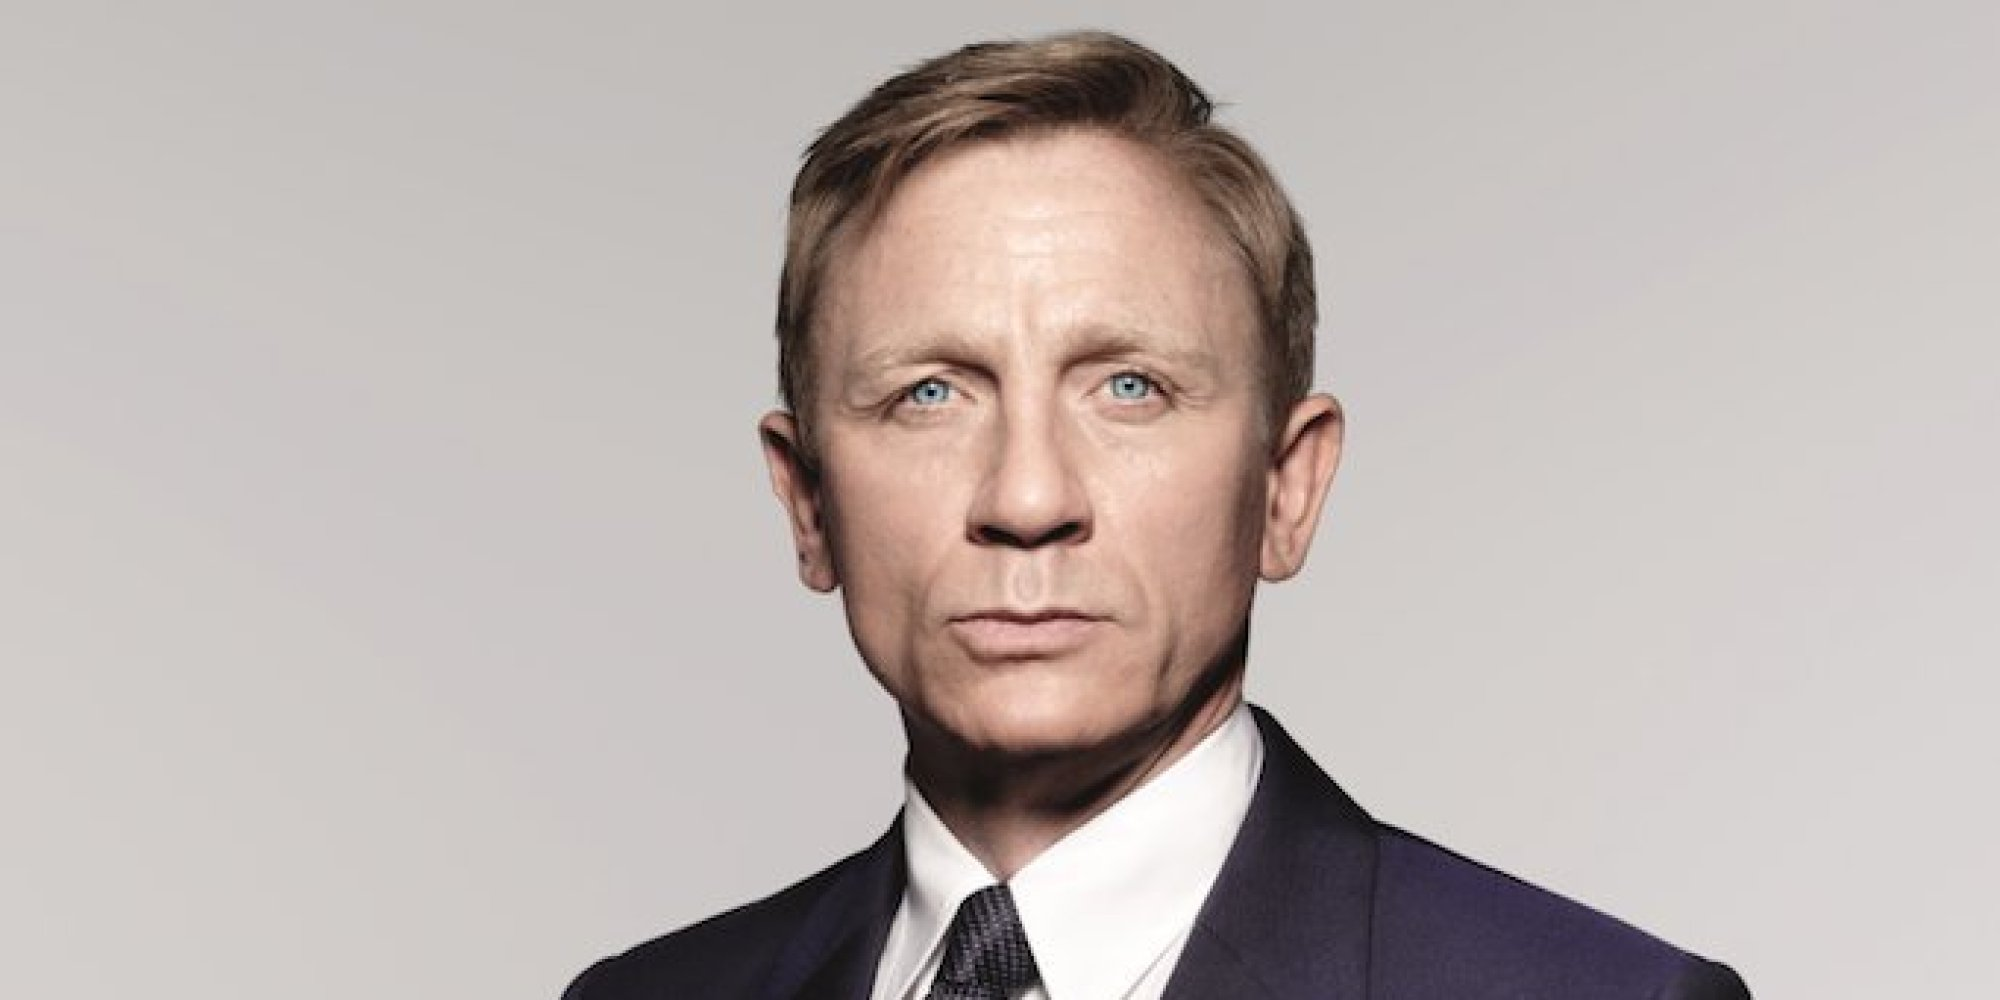 Daniel Craig As James Bond In Brand New 'Spectre' Images, To.